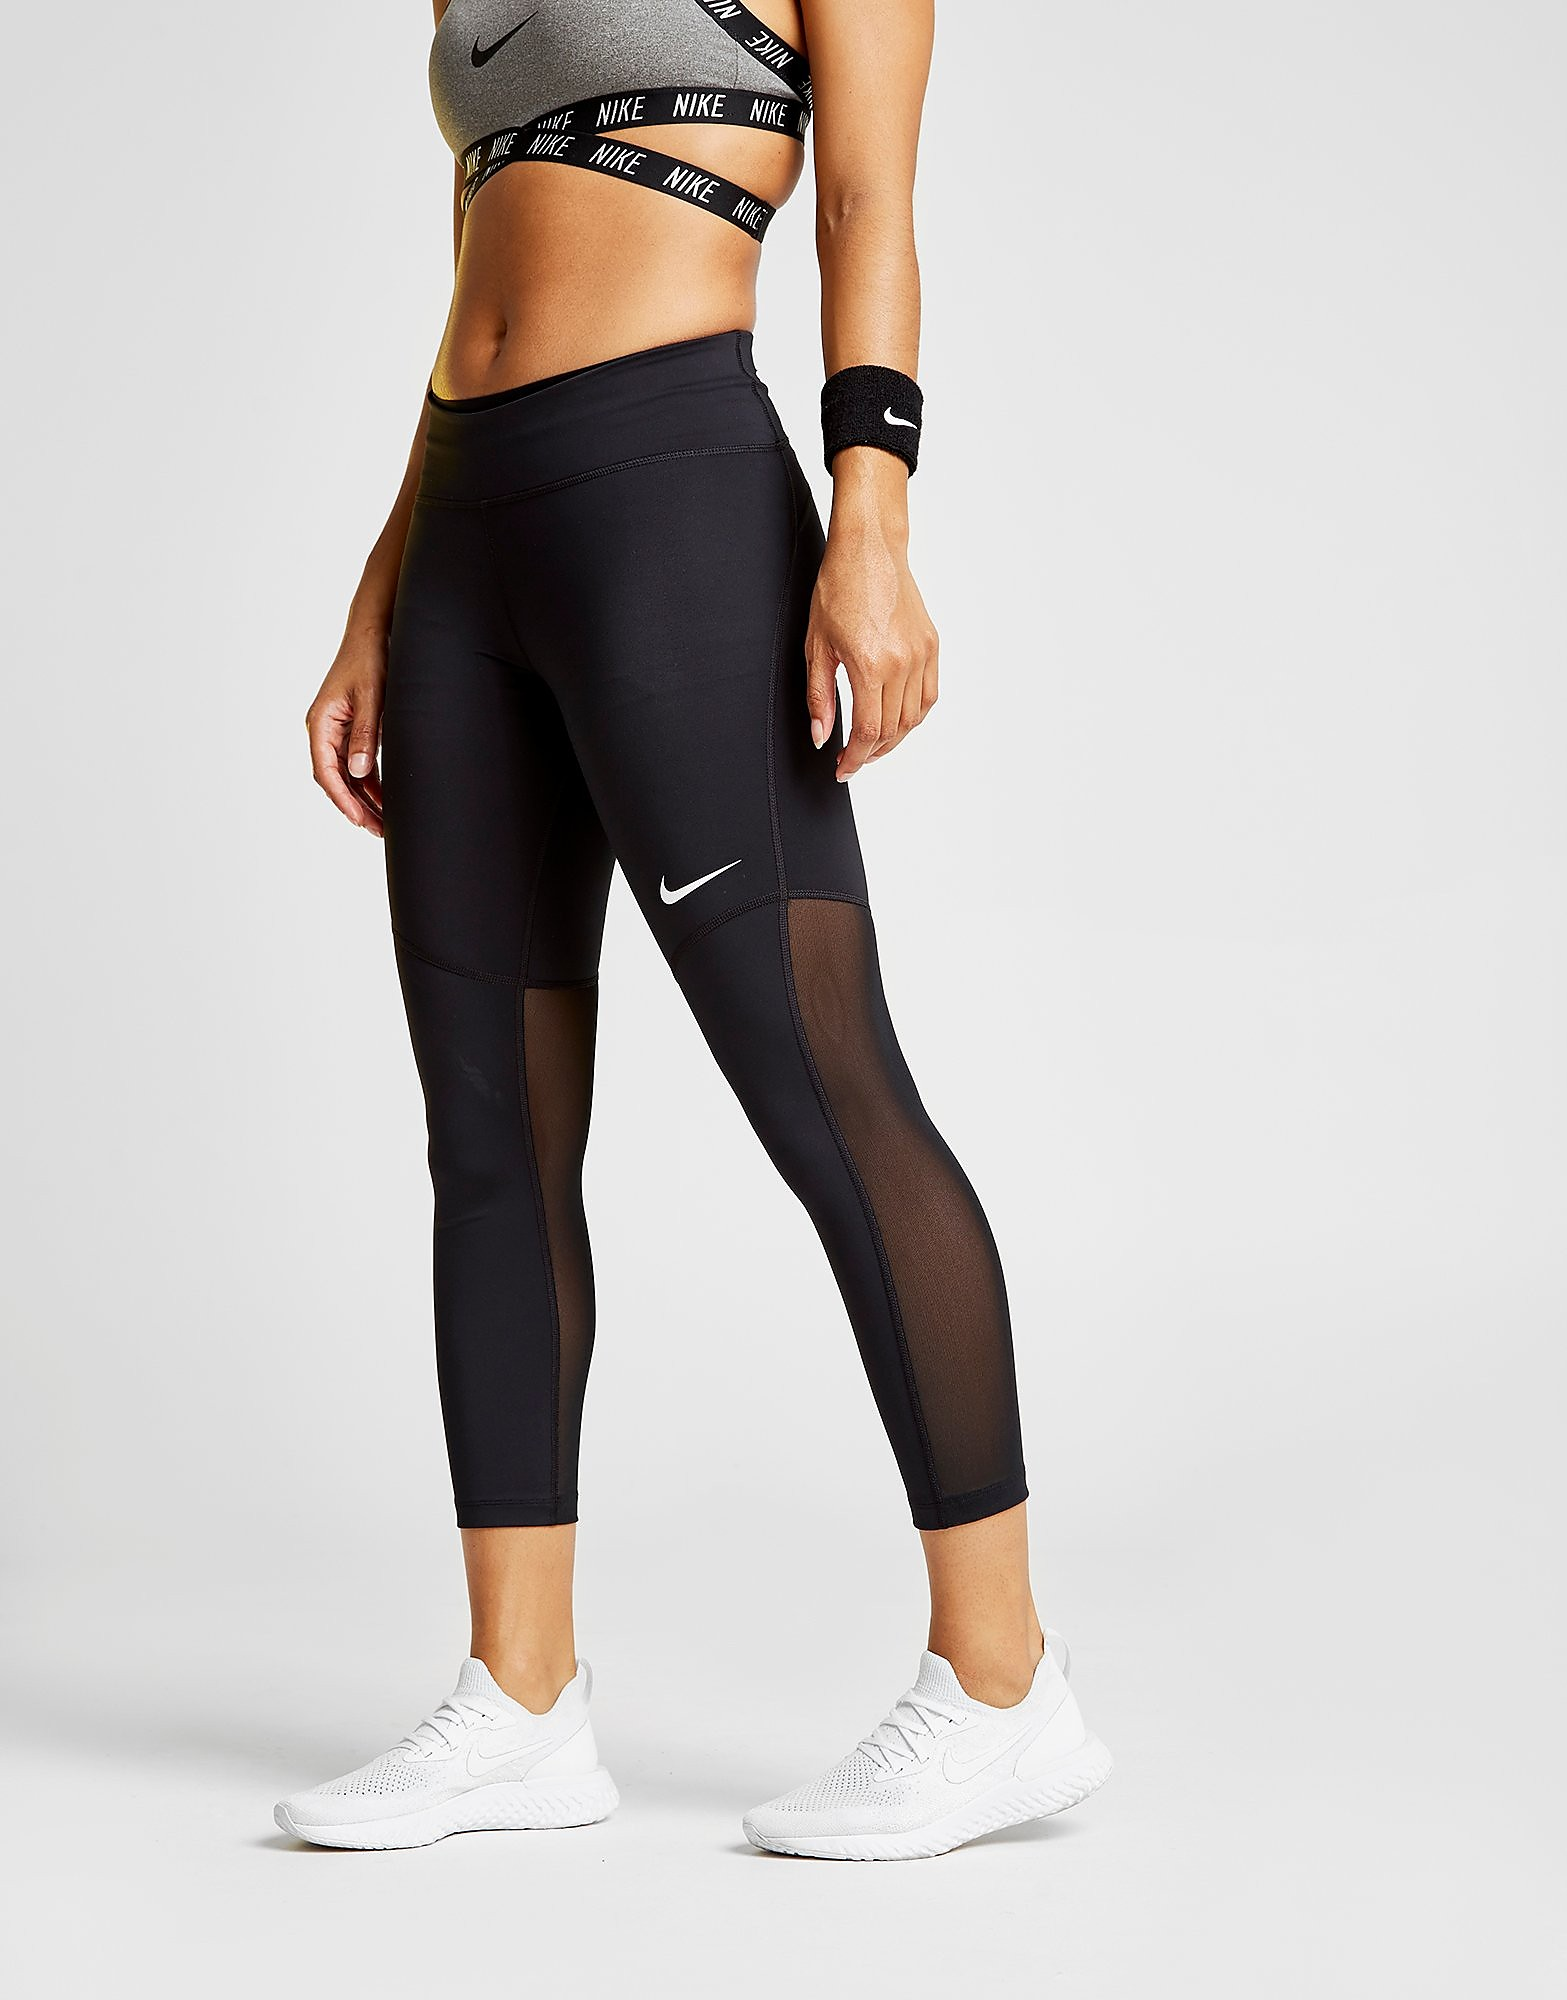 Nike Power Fly Crop Tights